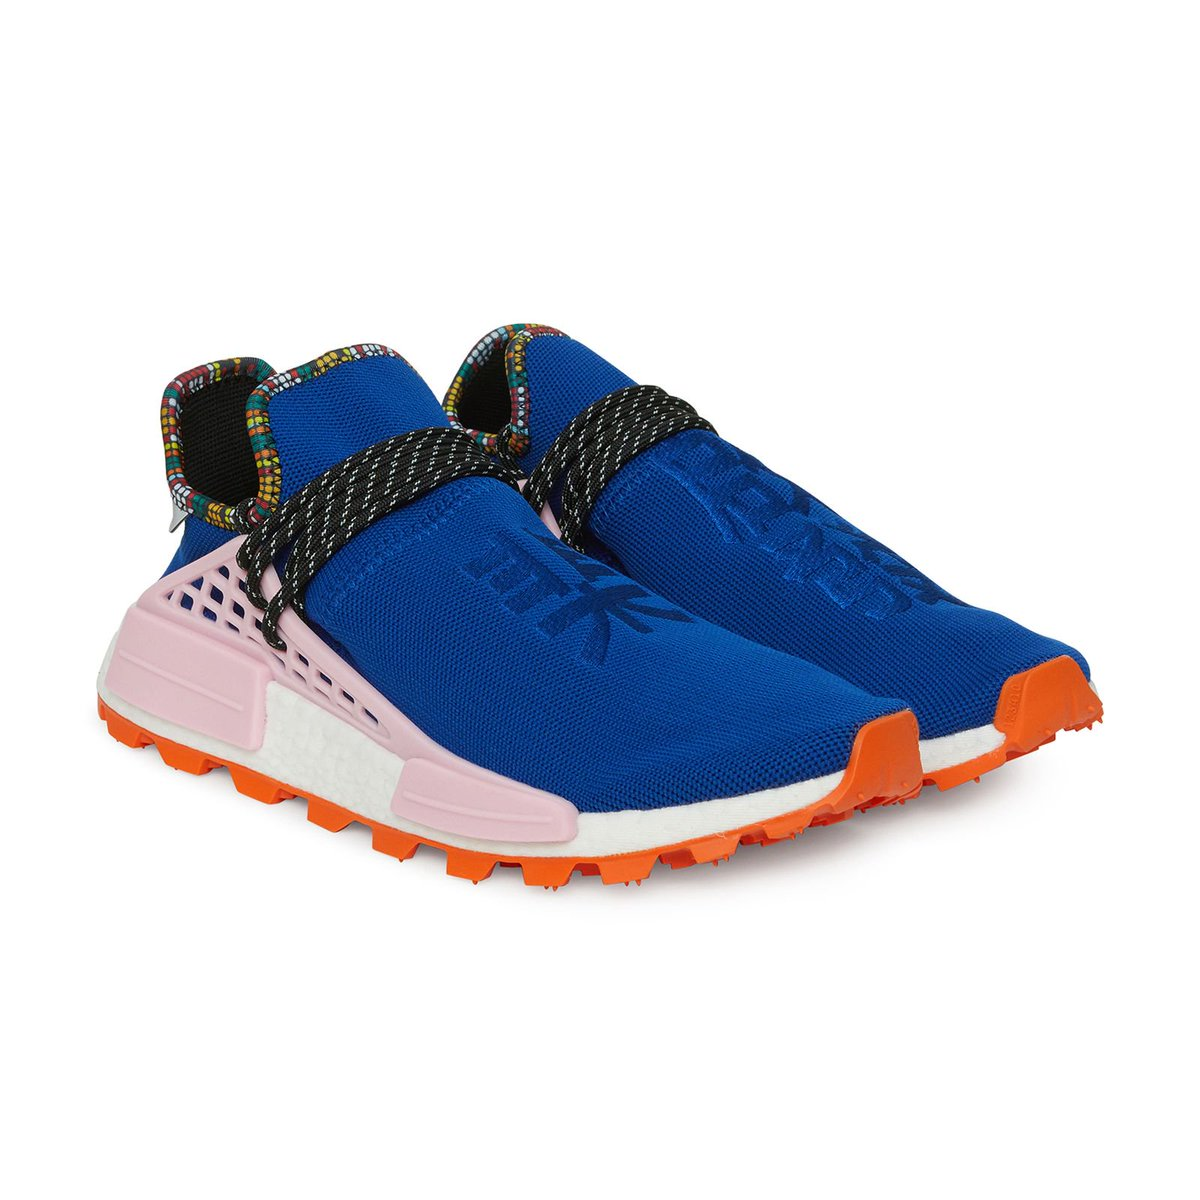 61ffcb2cd adidas x Pharrell Williams Solar Hu NMD  Inpiration pack  On Sale For As  Low As £158 At SJS (RRP £225) Power Blue    http   bit.ly 2AFwwAS Core Black     ...